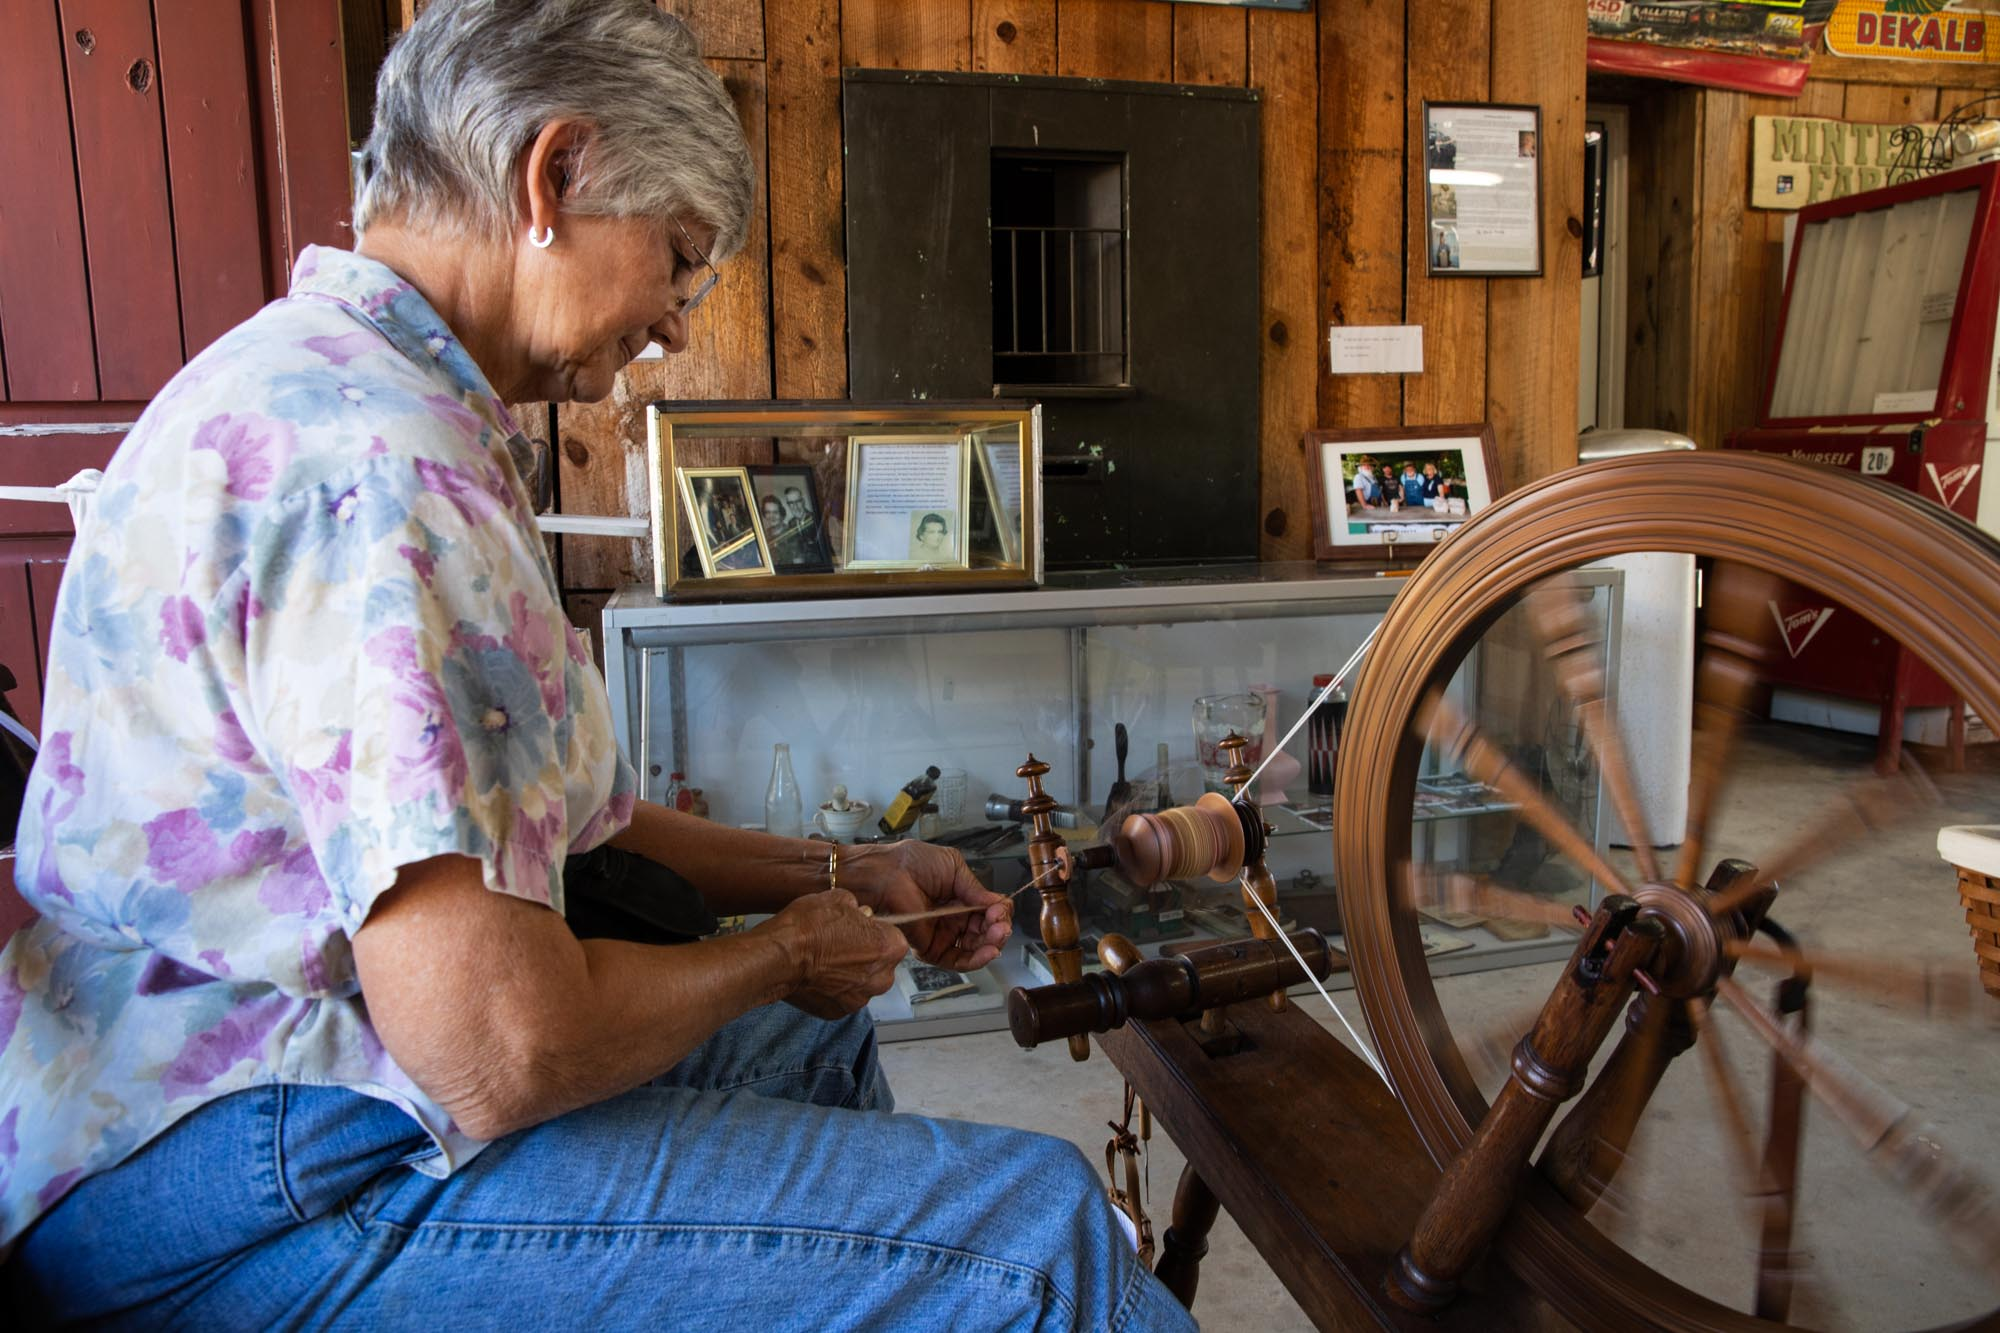 Ms Connie spinning some yarn.